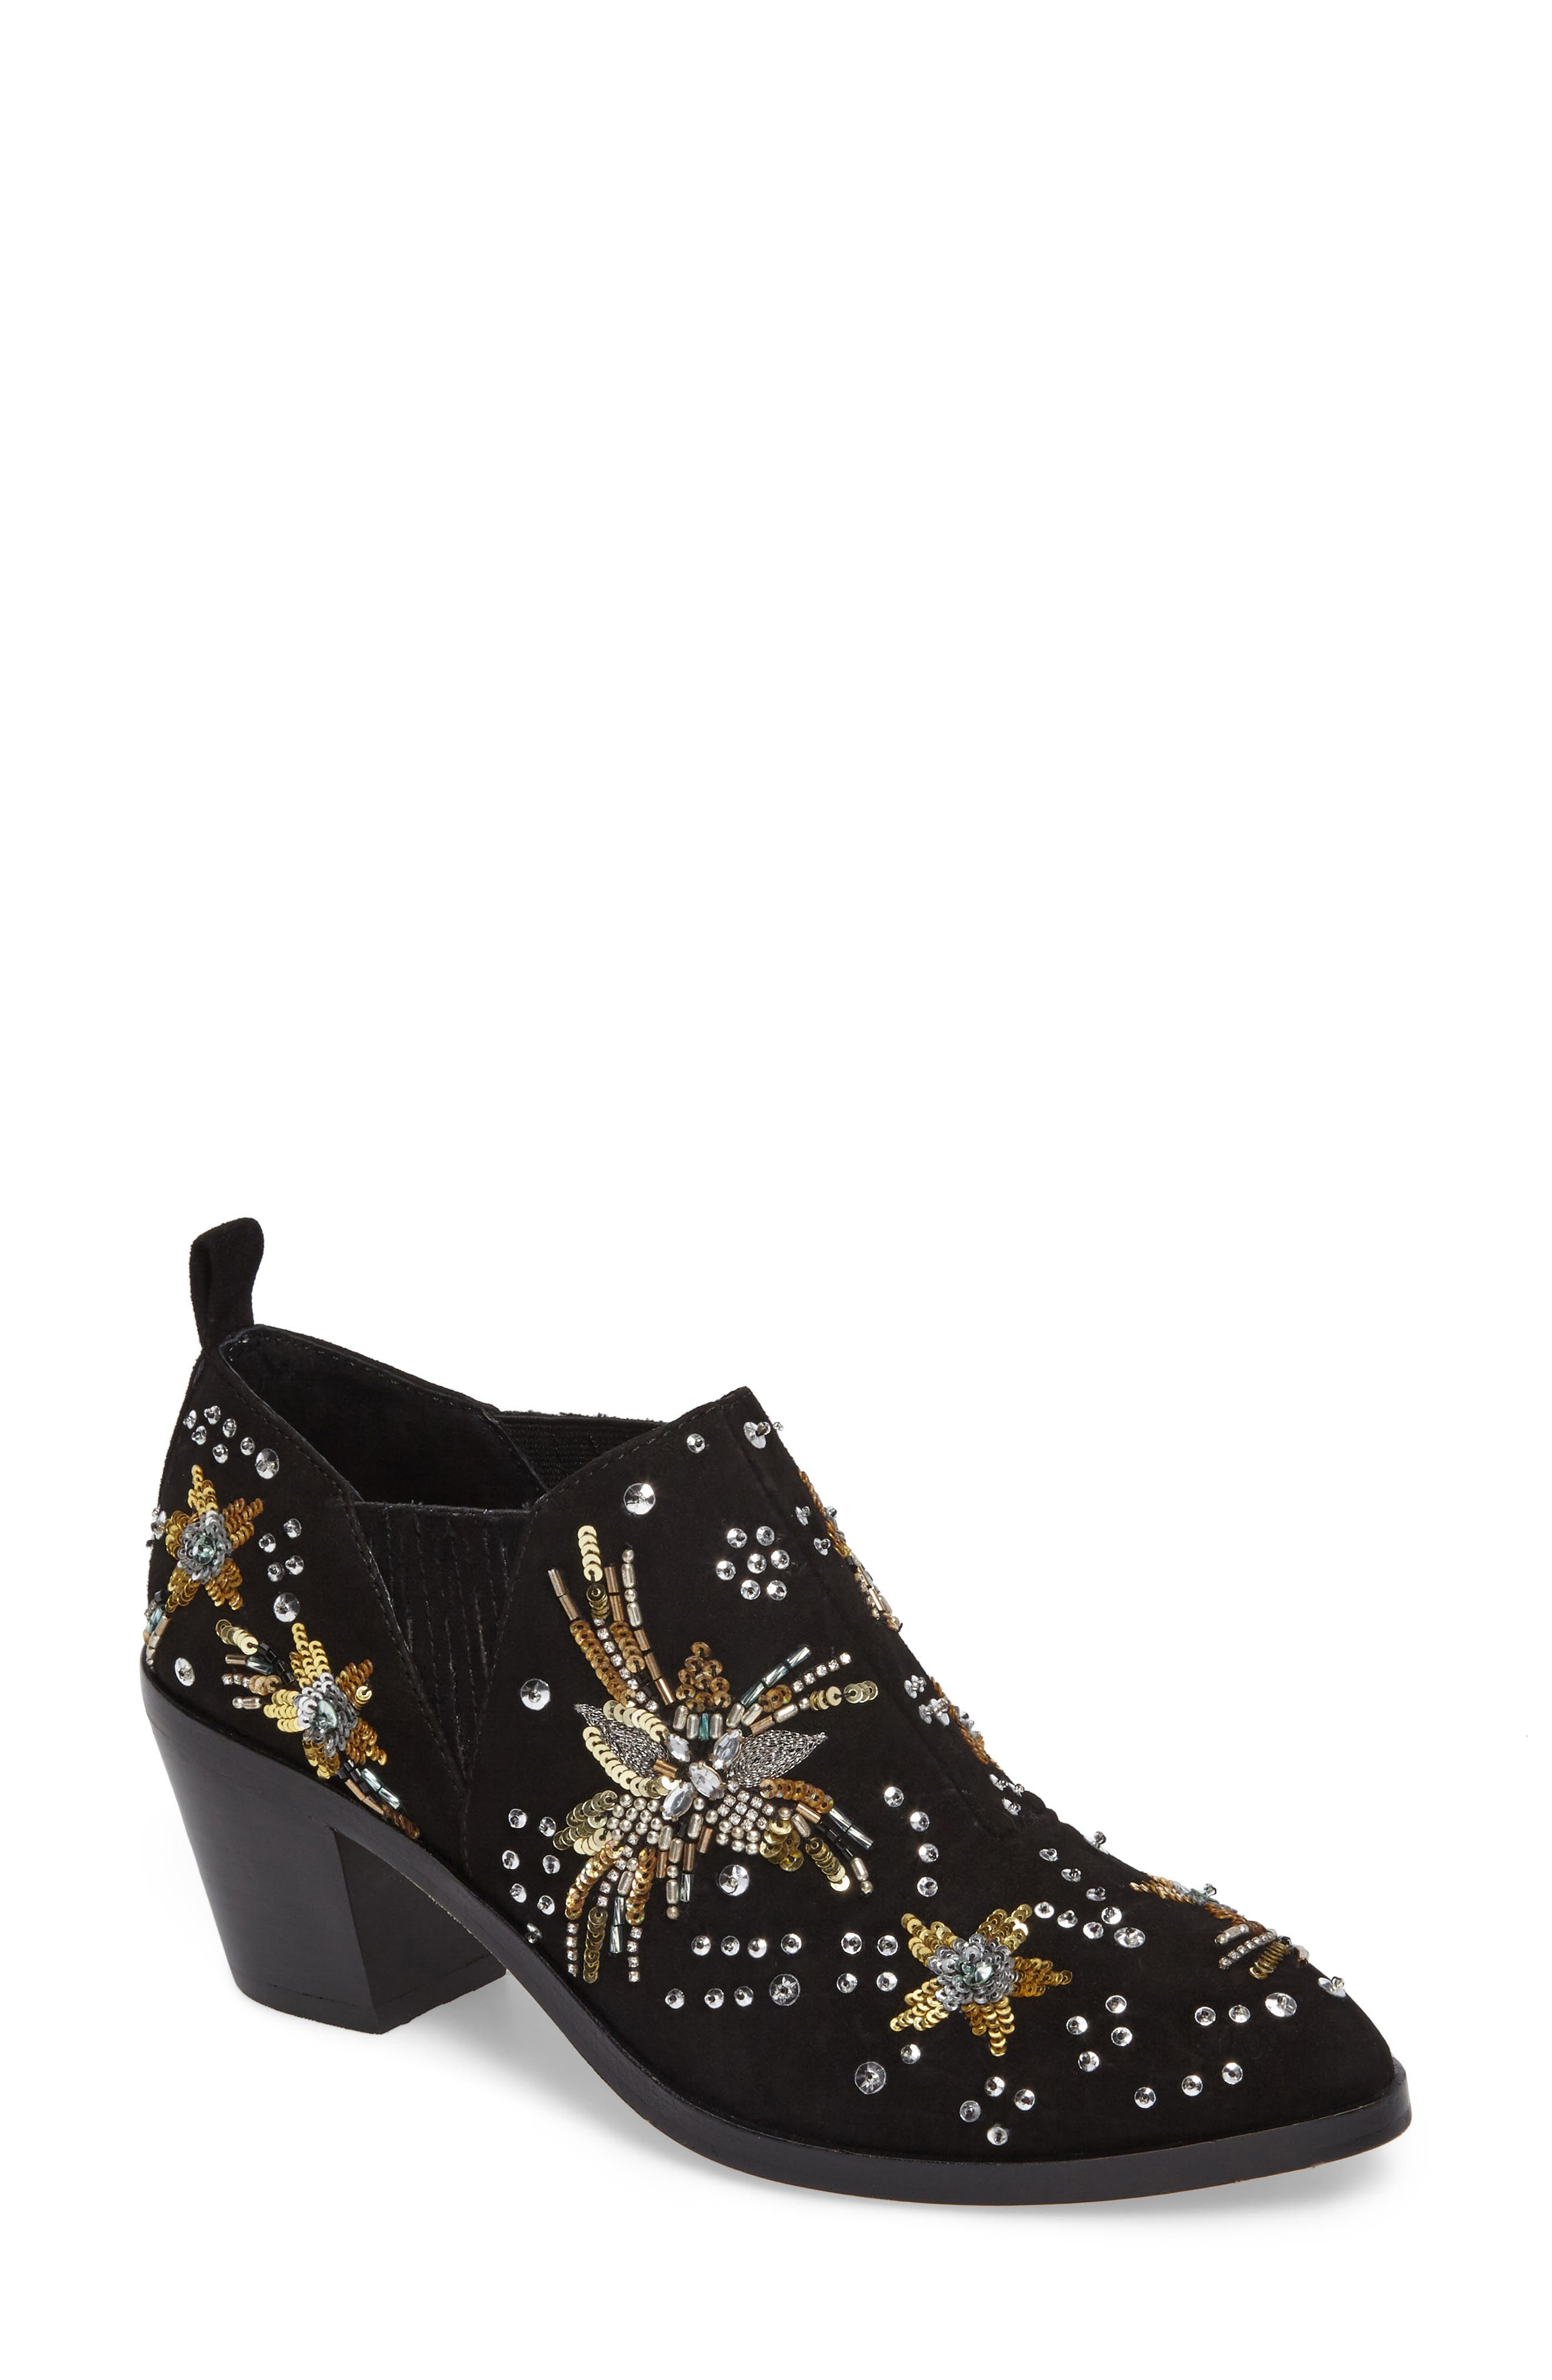 Lucy Embellished Bootie,                             Main thumbnail 1, color,                             Black